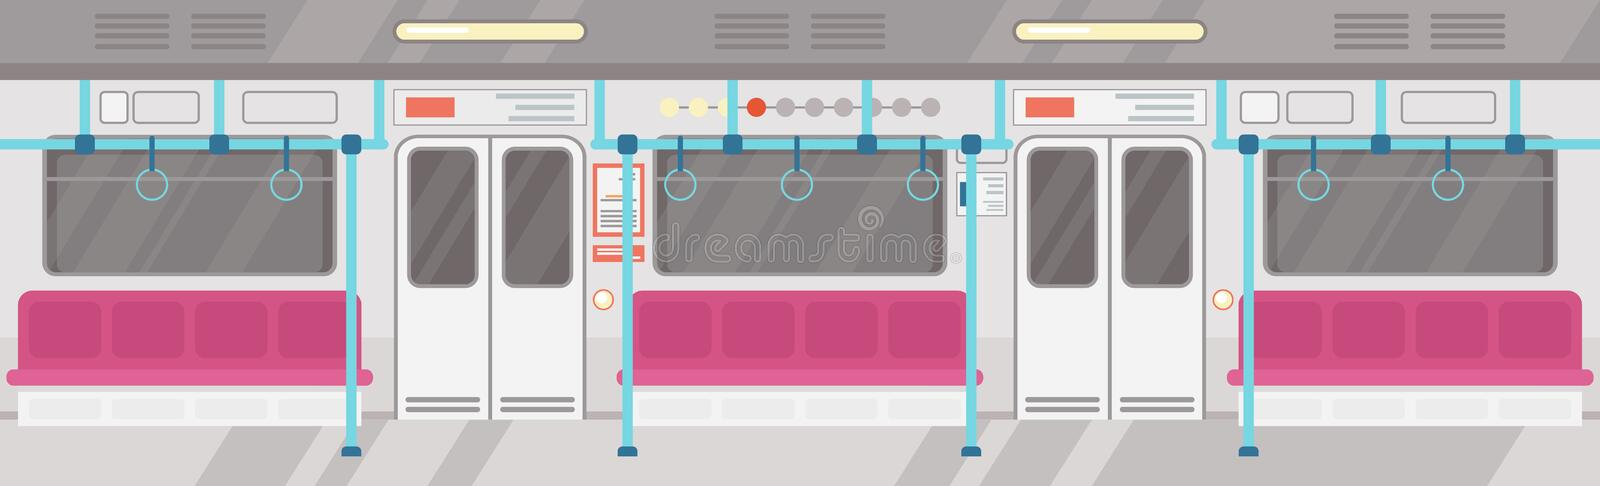 Vector illustration of empty of modern subway interior. City public transport concept, underground tram interior with royalty free illustration